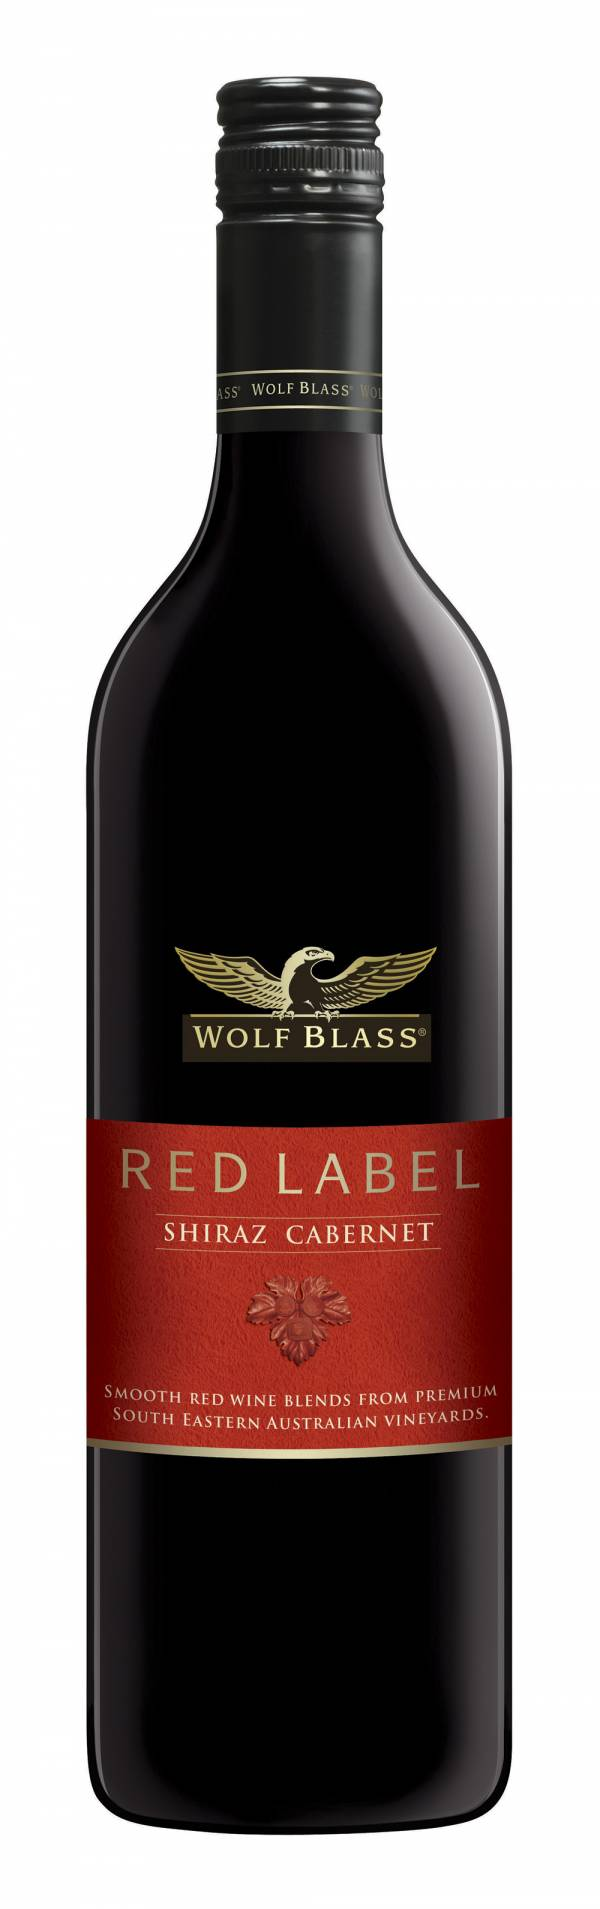 It S Red And Hearty For Wolf Blass Soft White For Muller Georgia Straight Vancouver S News Entertainment Weekly